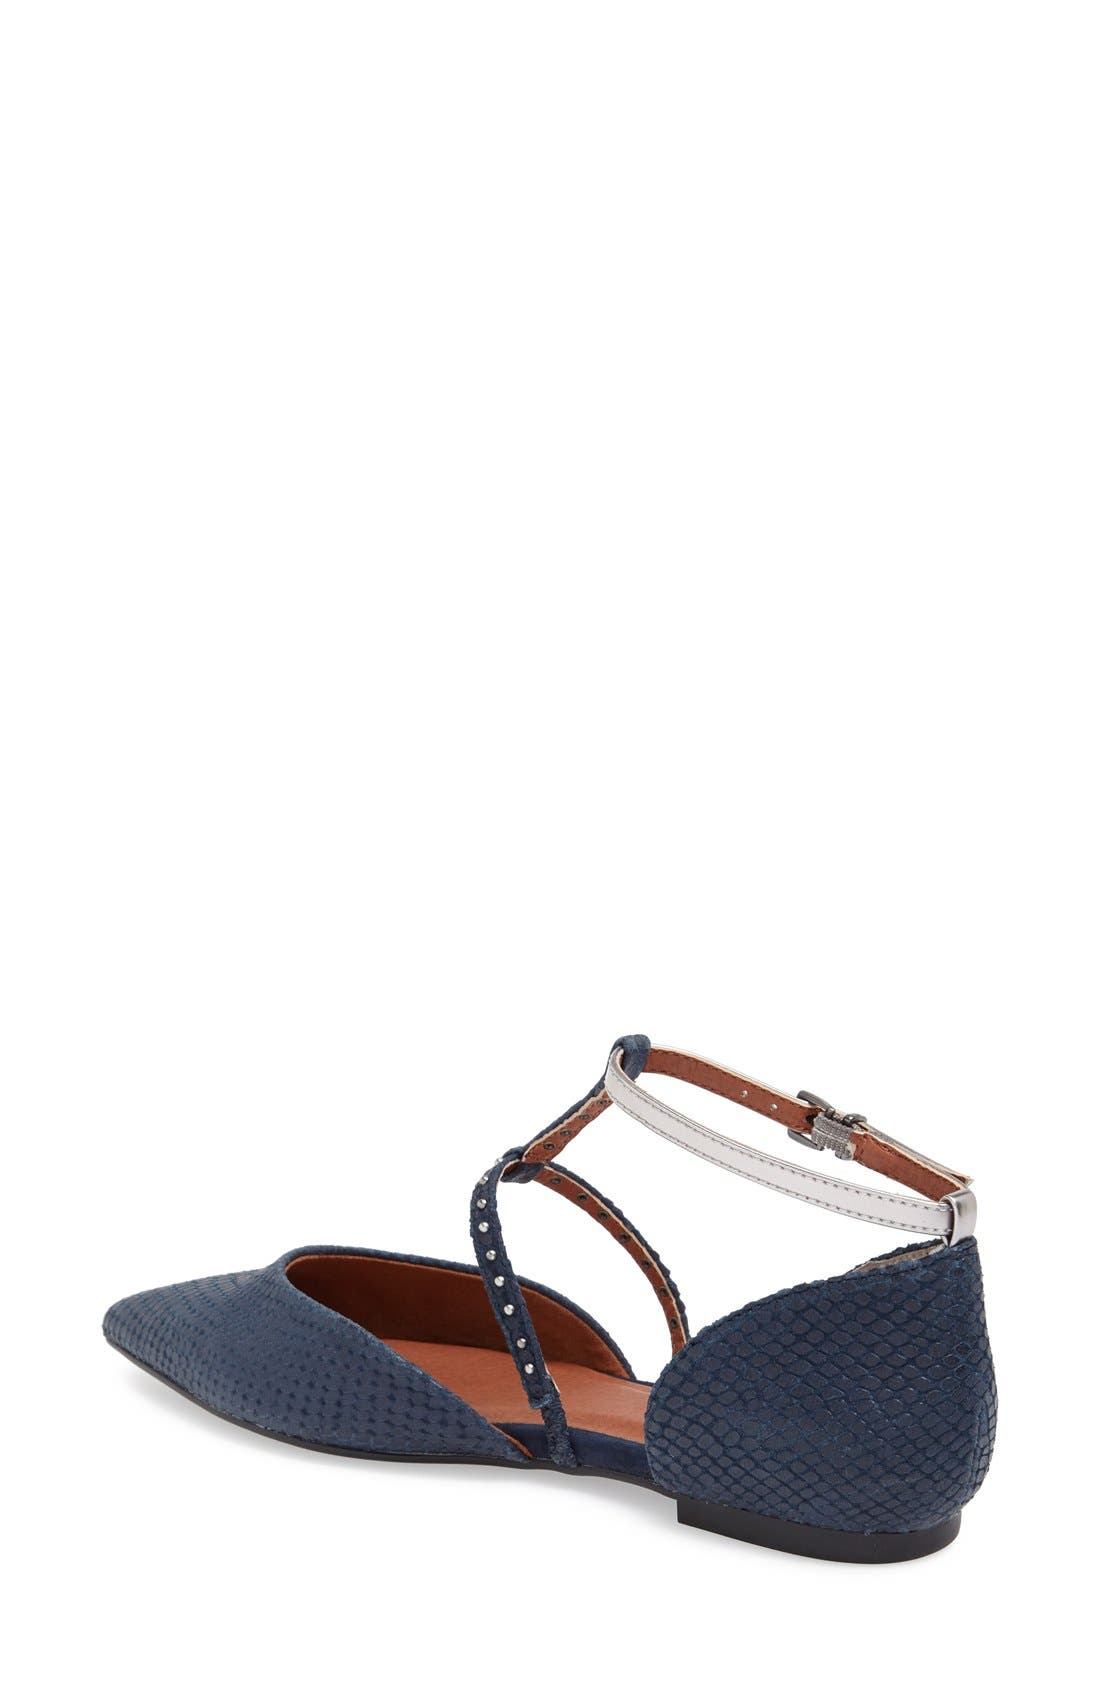 Alternate Image 2  - Seychelles 'Uncovered' Leather Ankle Strap Flat (Women)